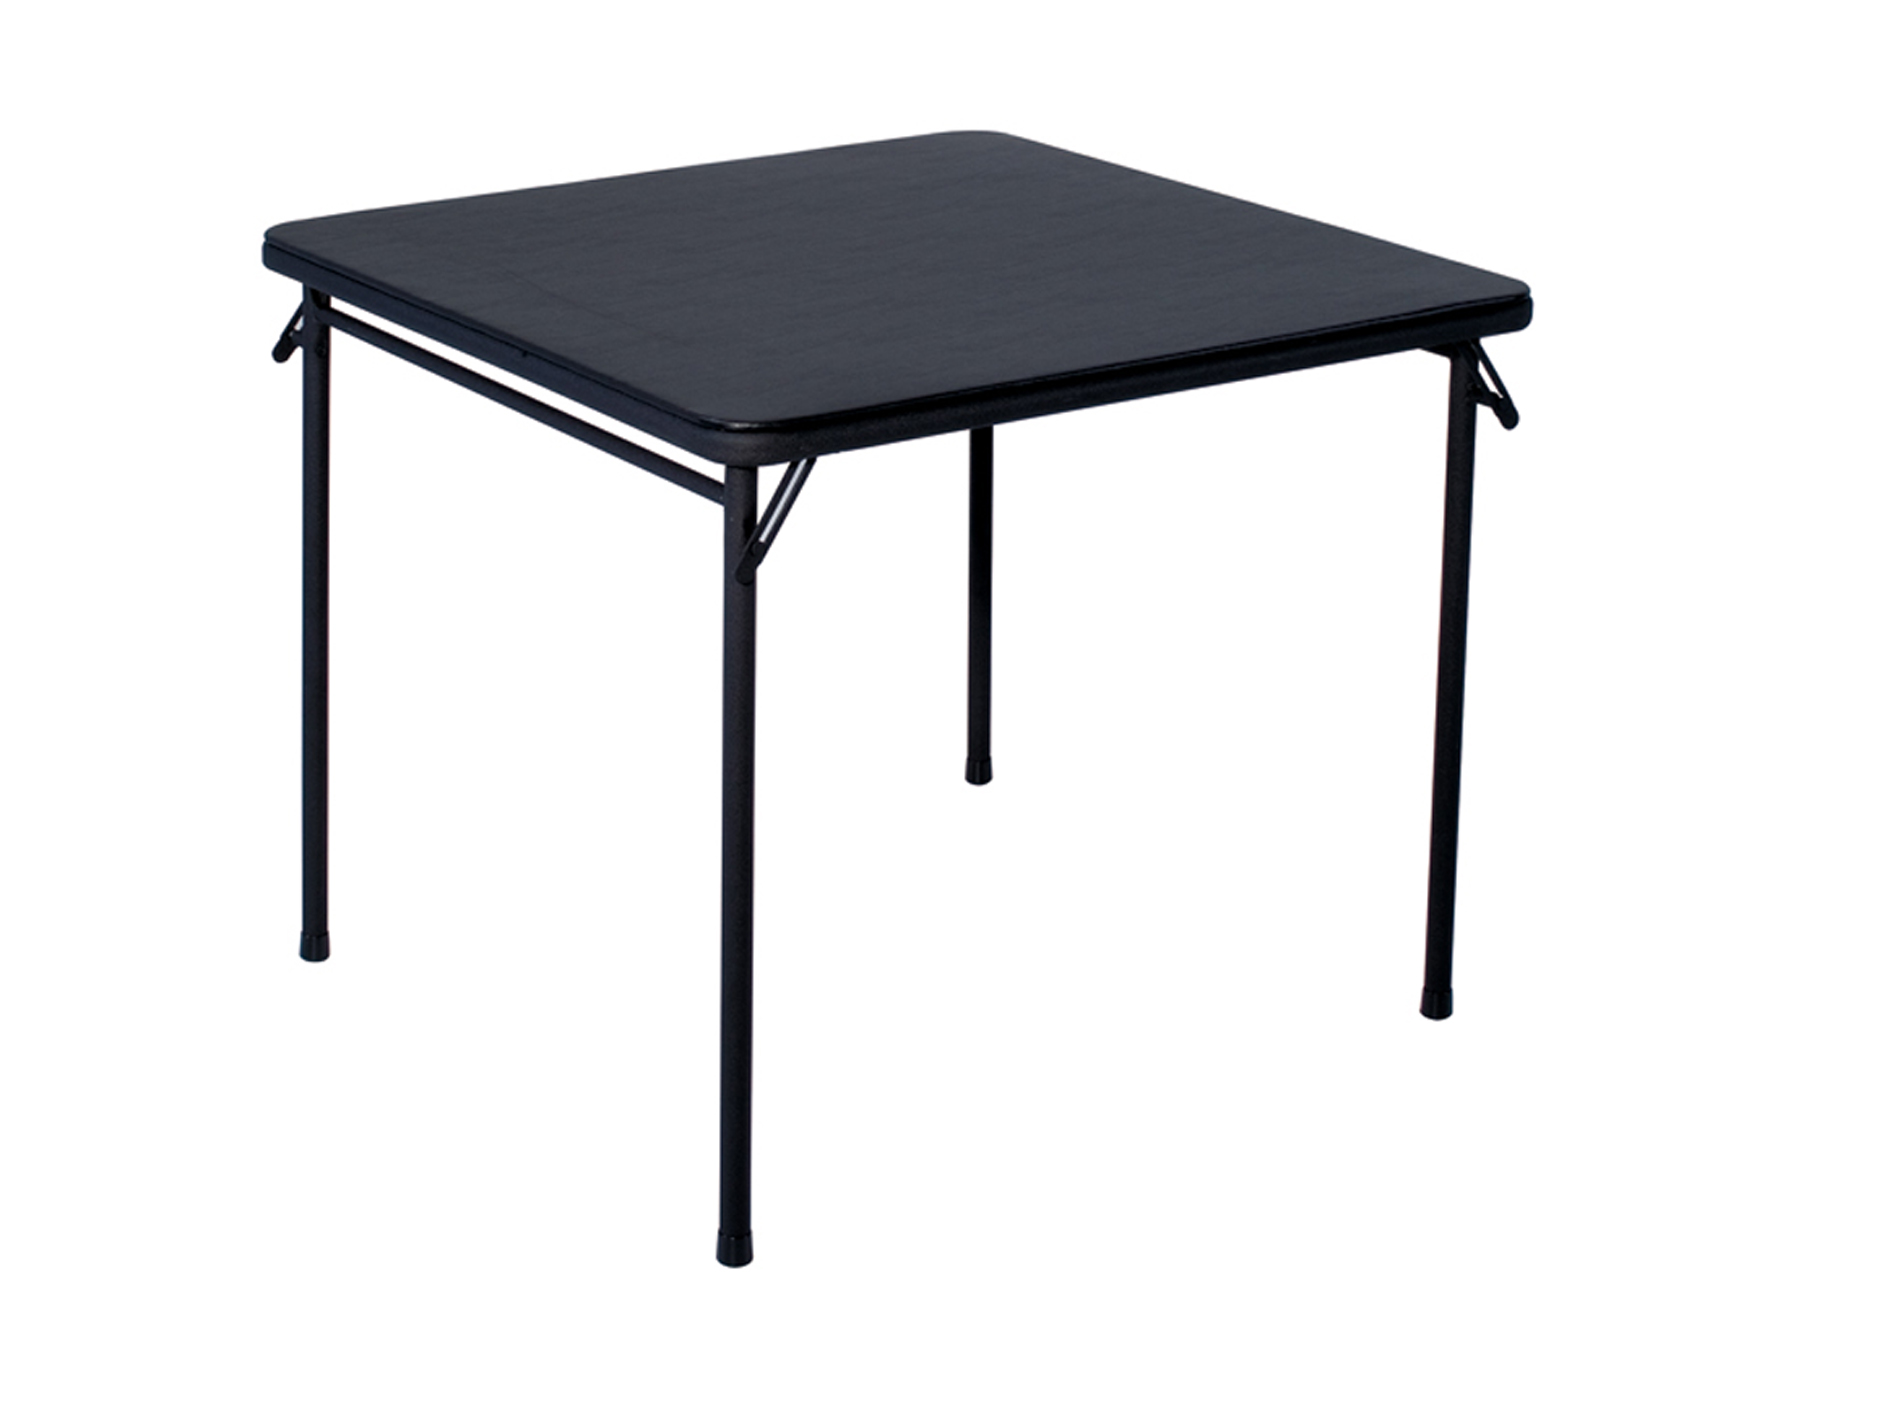 Cosco Card Table And Chairs Cosco Home And Office Products 34 In Square Folding Table